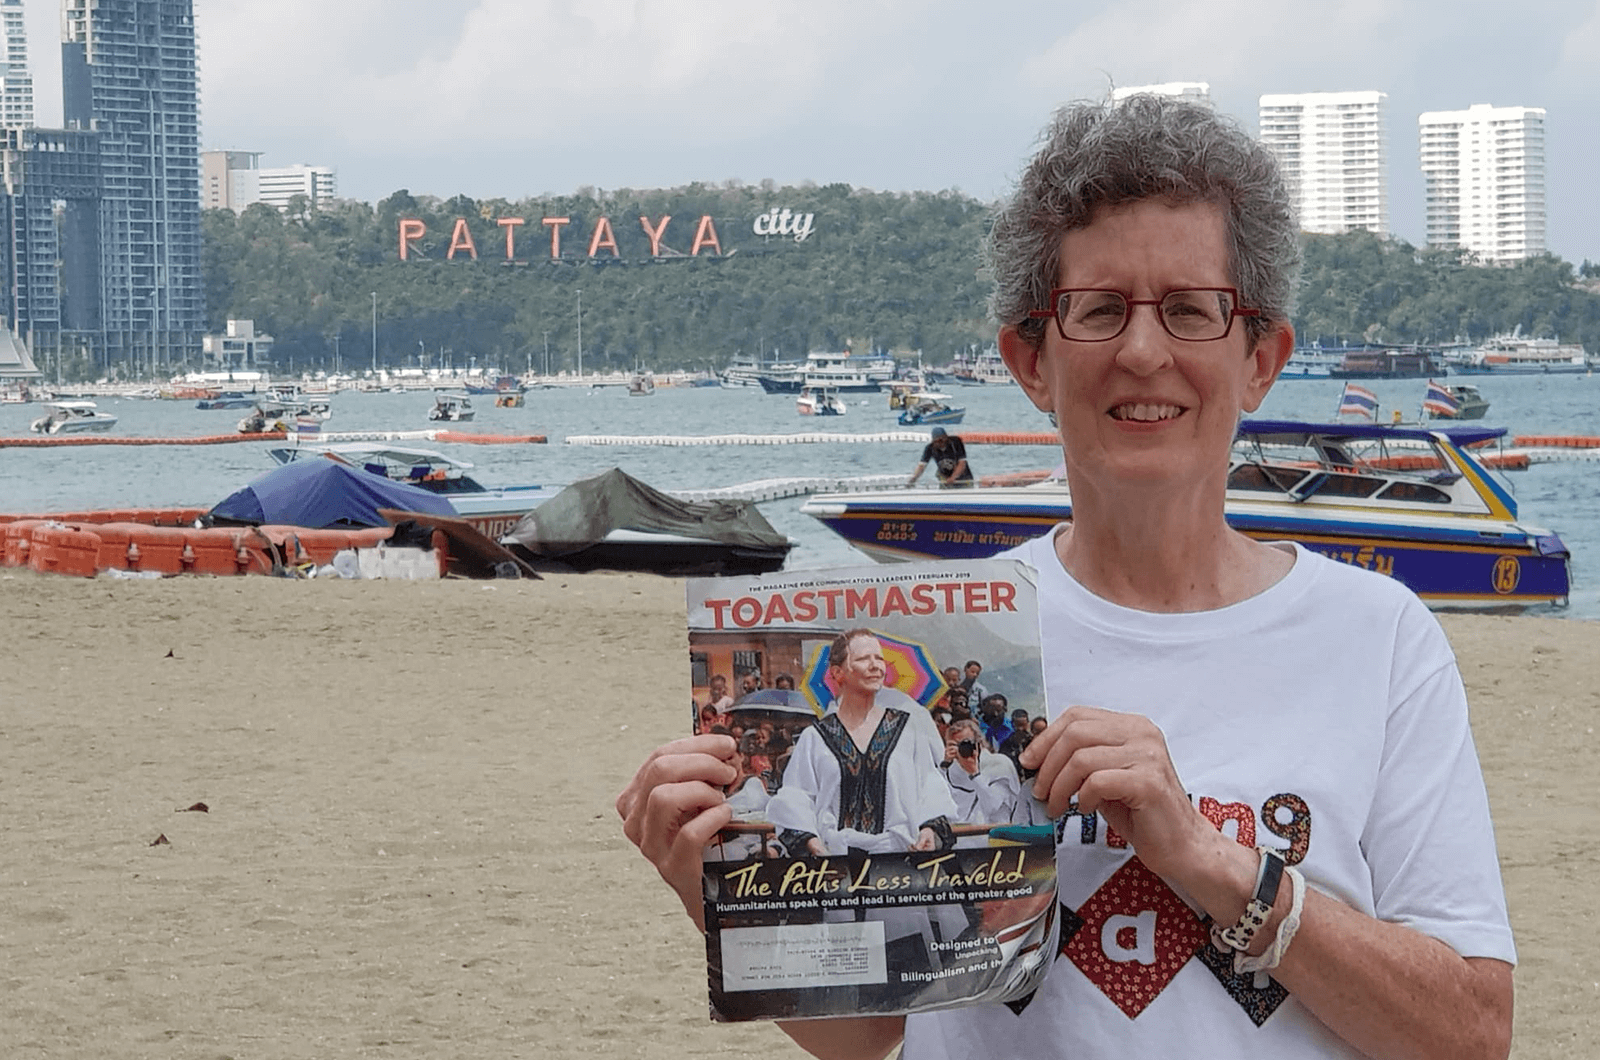 Susan Aviram of Shaker Heights, Ohio, visits Pattaya City, Thailand. She took this trip to see an exchange student who lived with her 20 years ago.